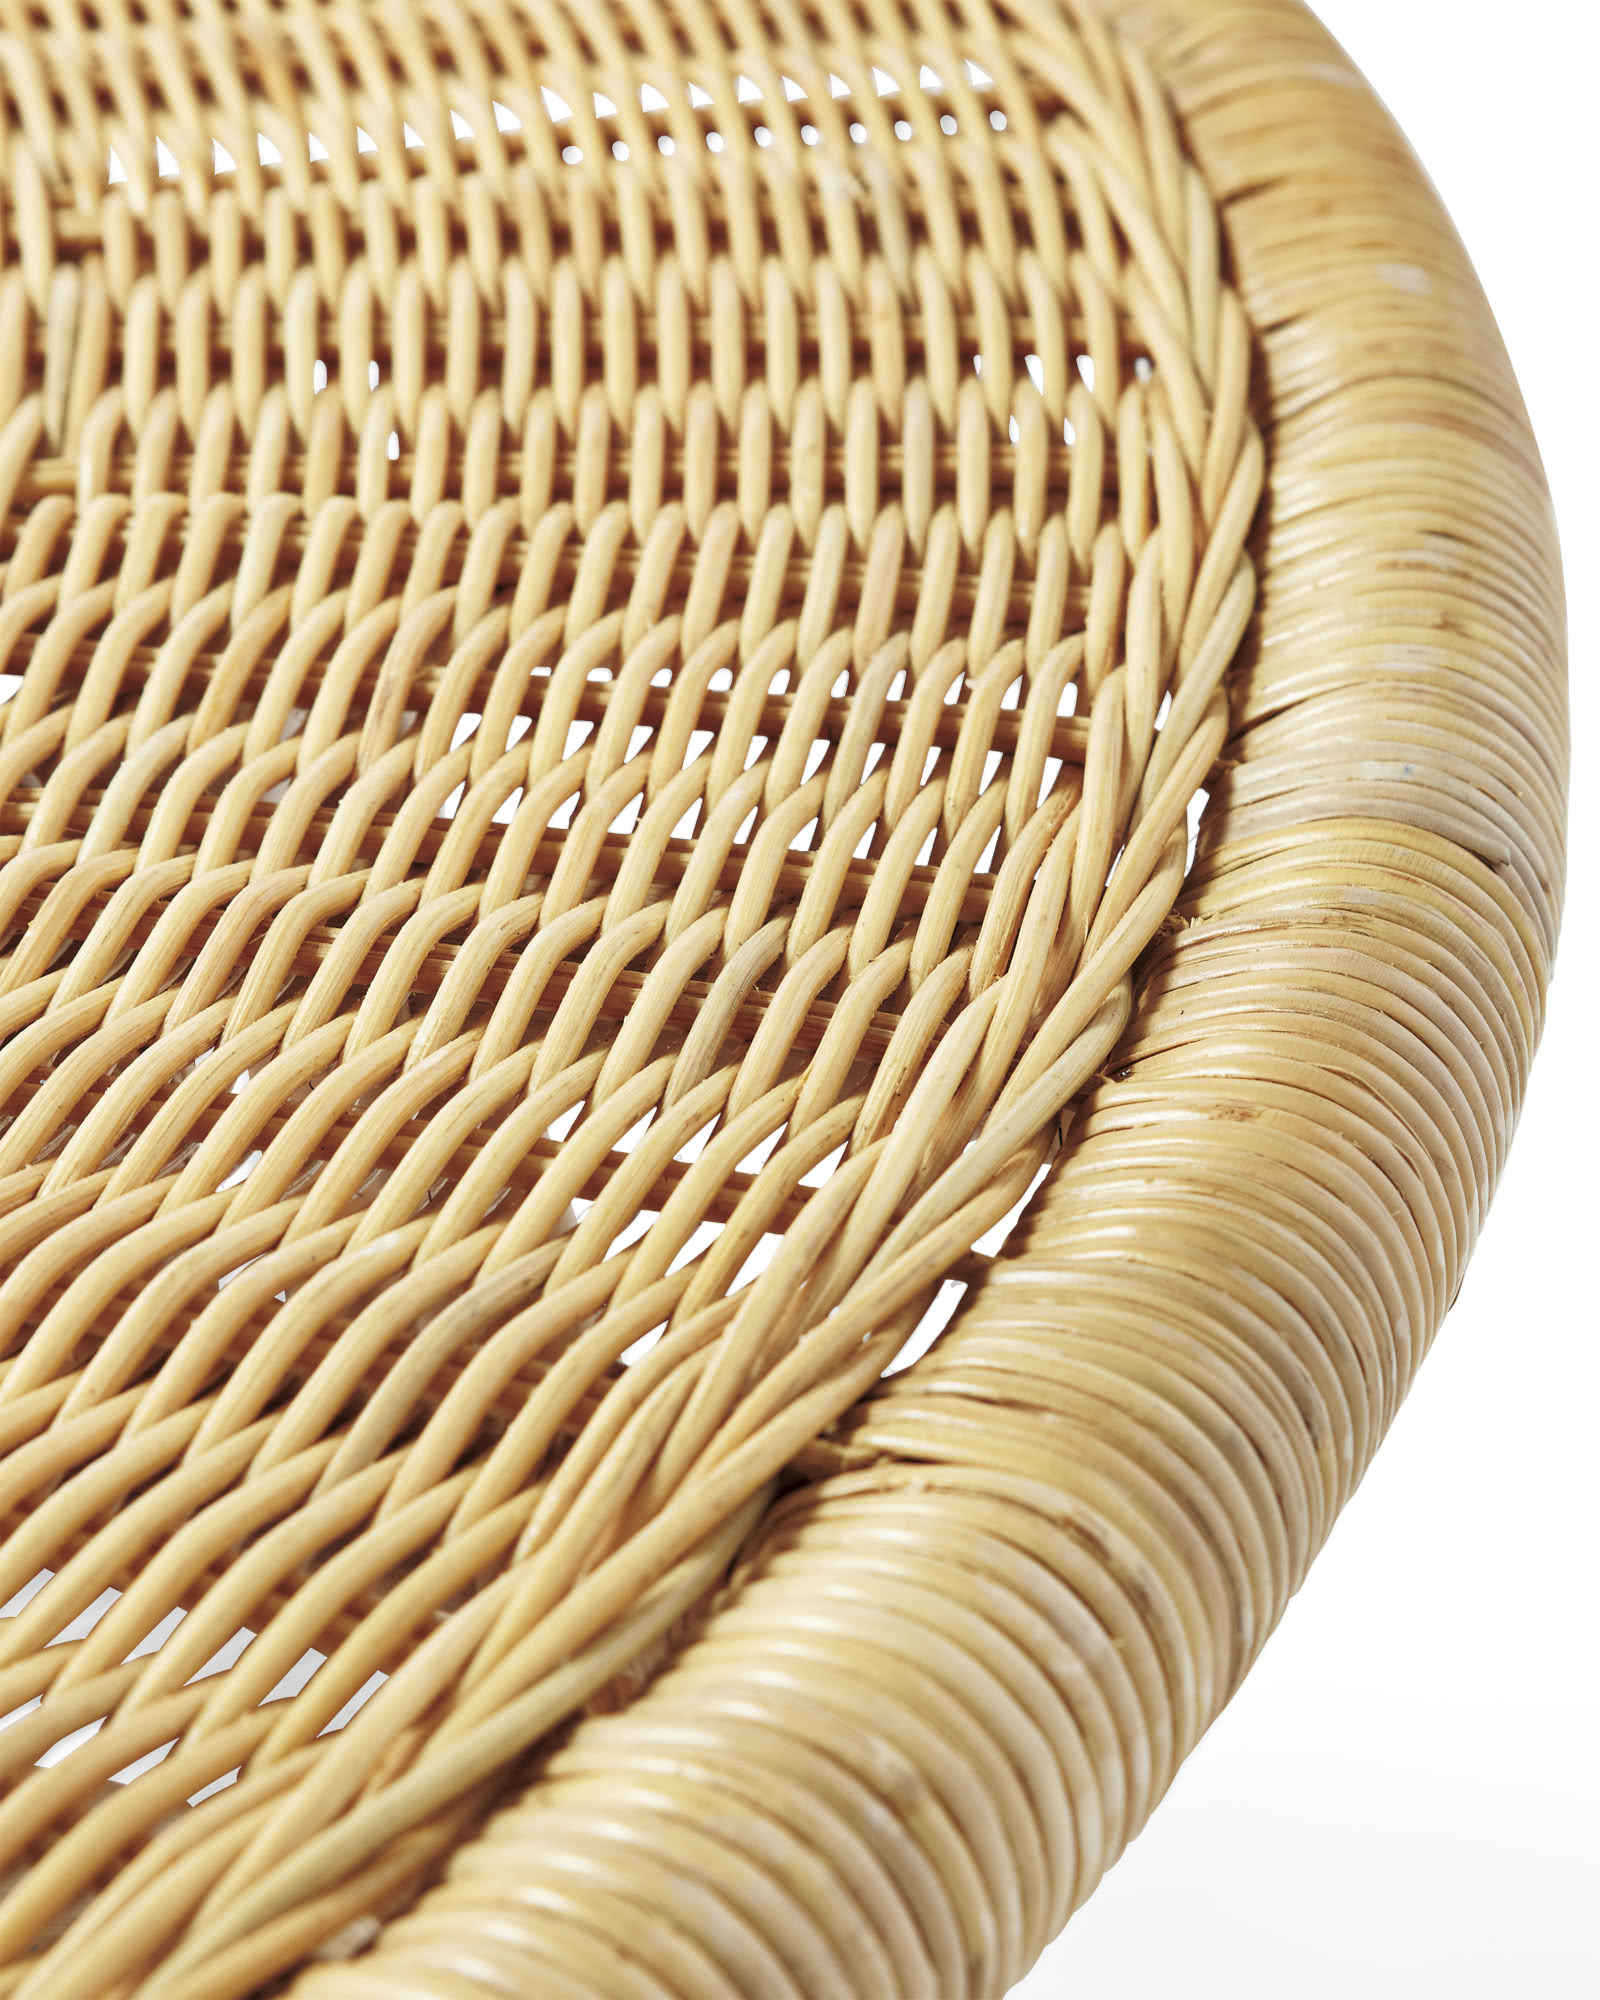 Couchtisch 70 X 70 Anguilla Rattan Coffee Table - Serena & Lily